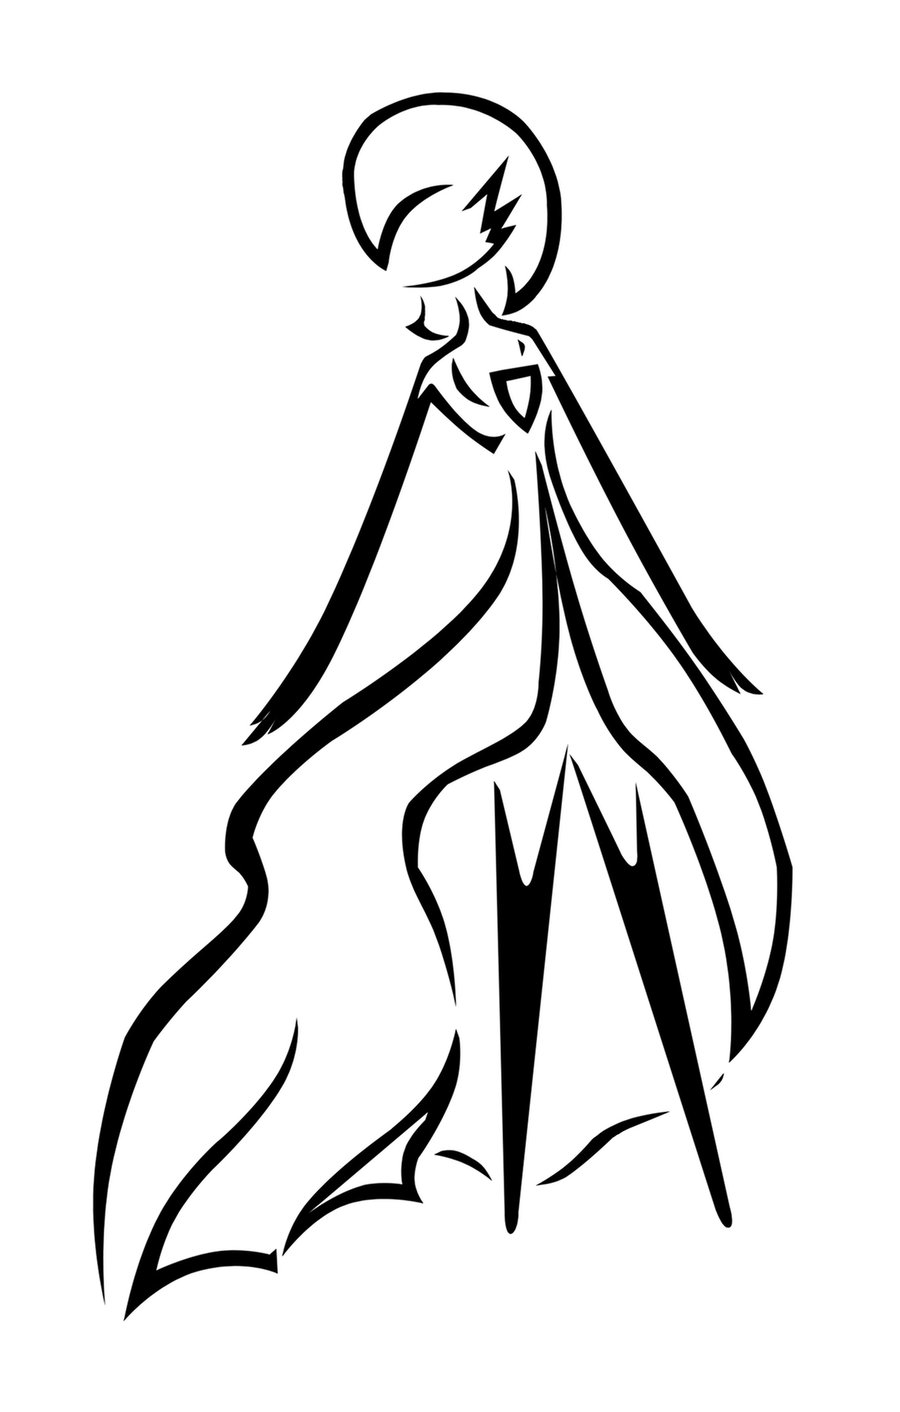 Line Drawing Angel : Angel line drawing clipart best